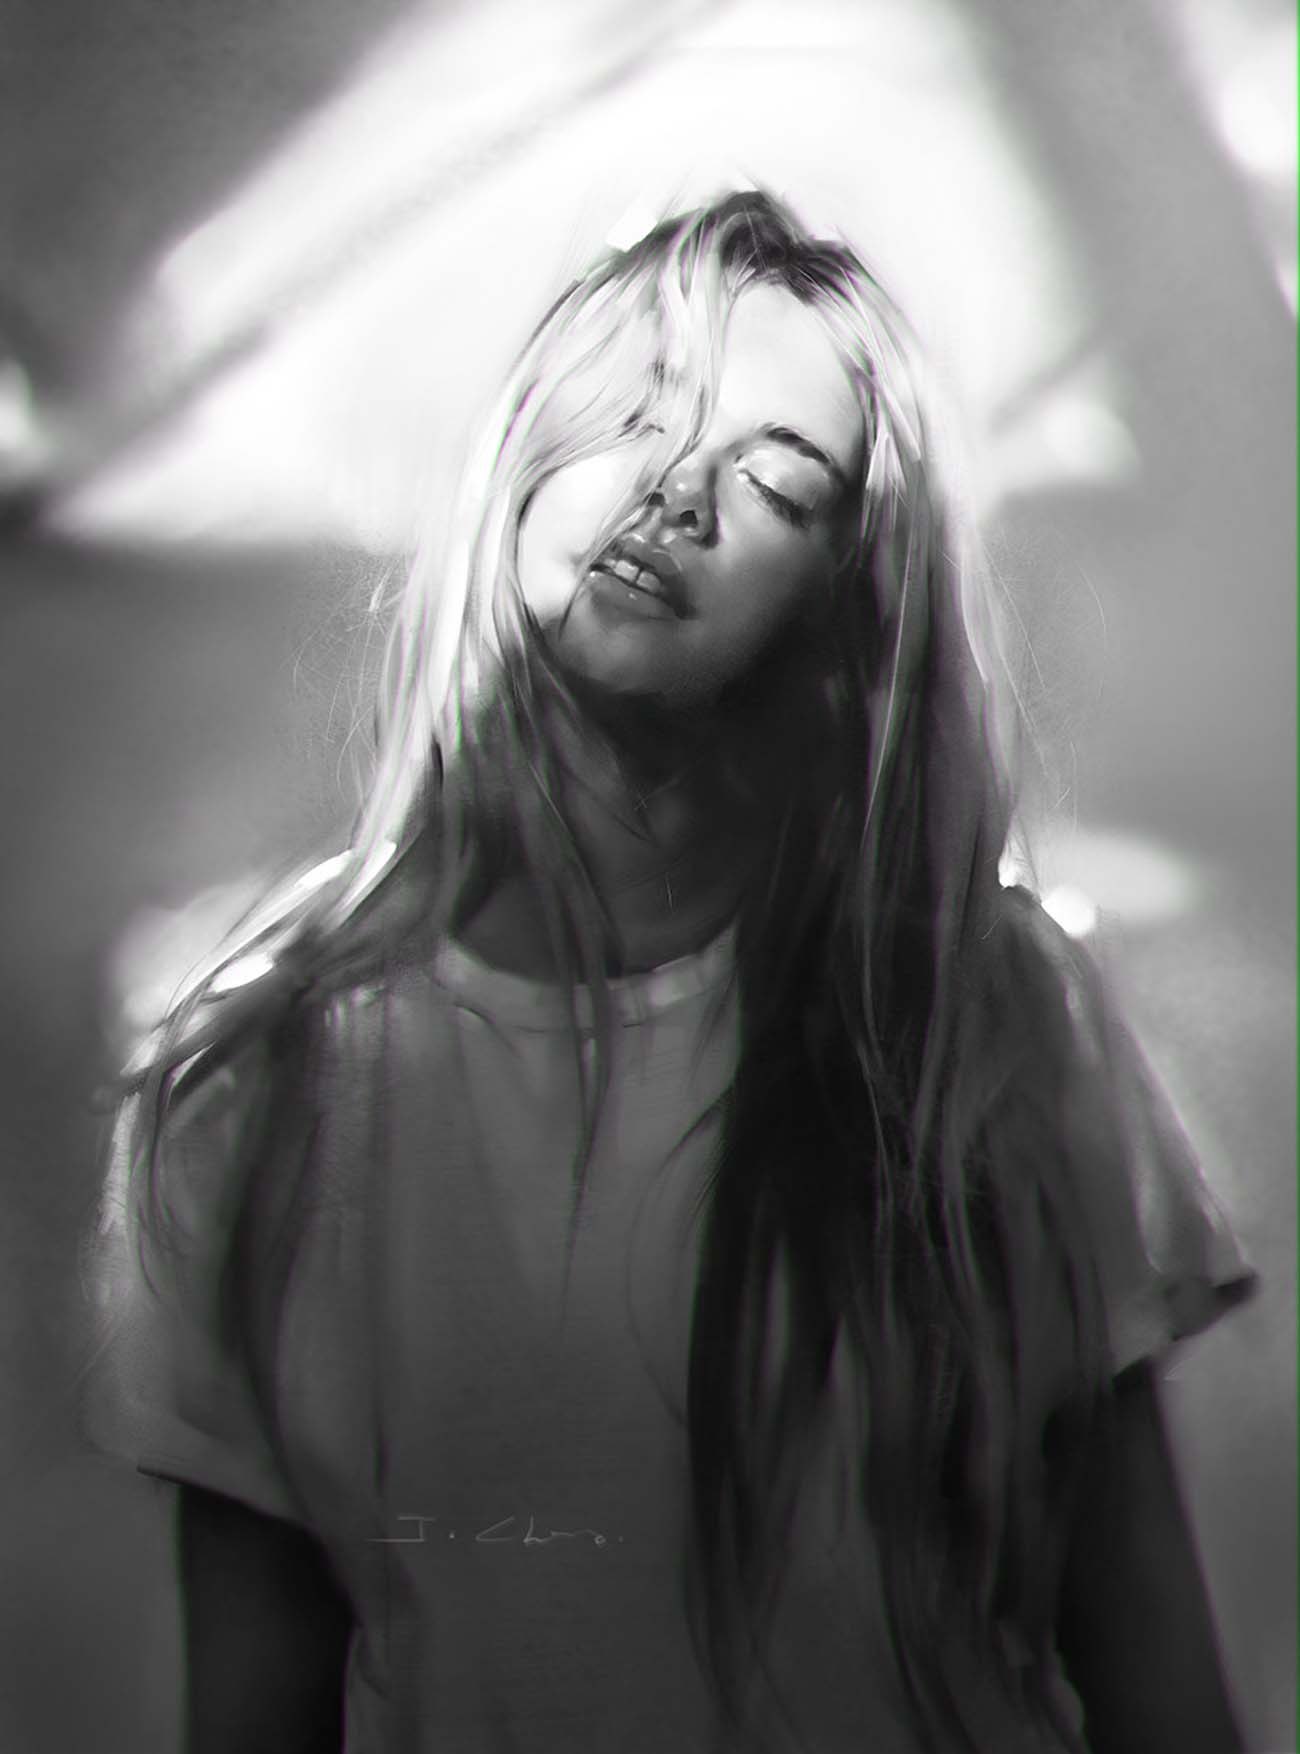 Yanjun Cheng | Paintable.cc Digital Painting Inspiration - Learn the Art of Digital Painting! #digitalpainting #digitalart